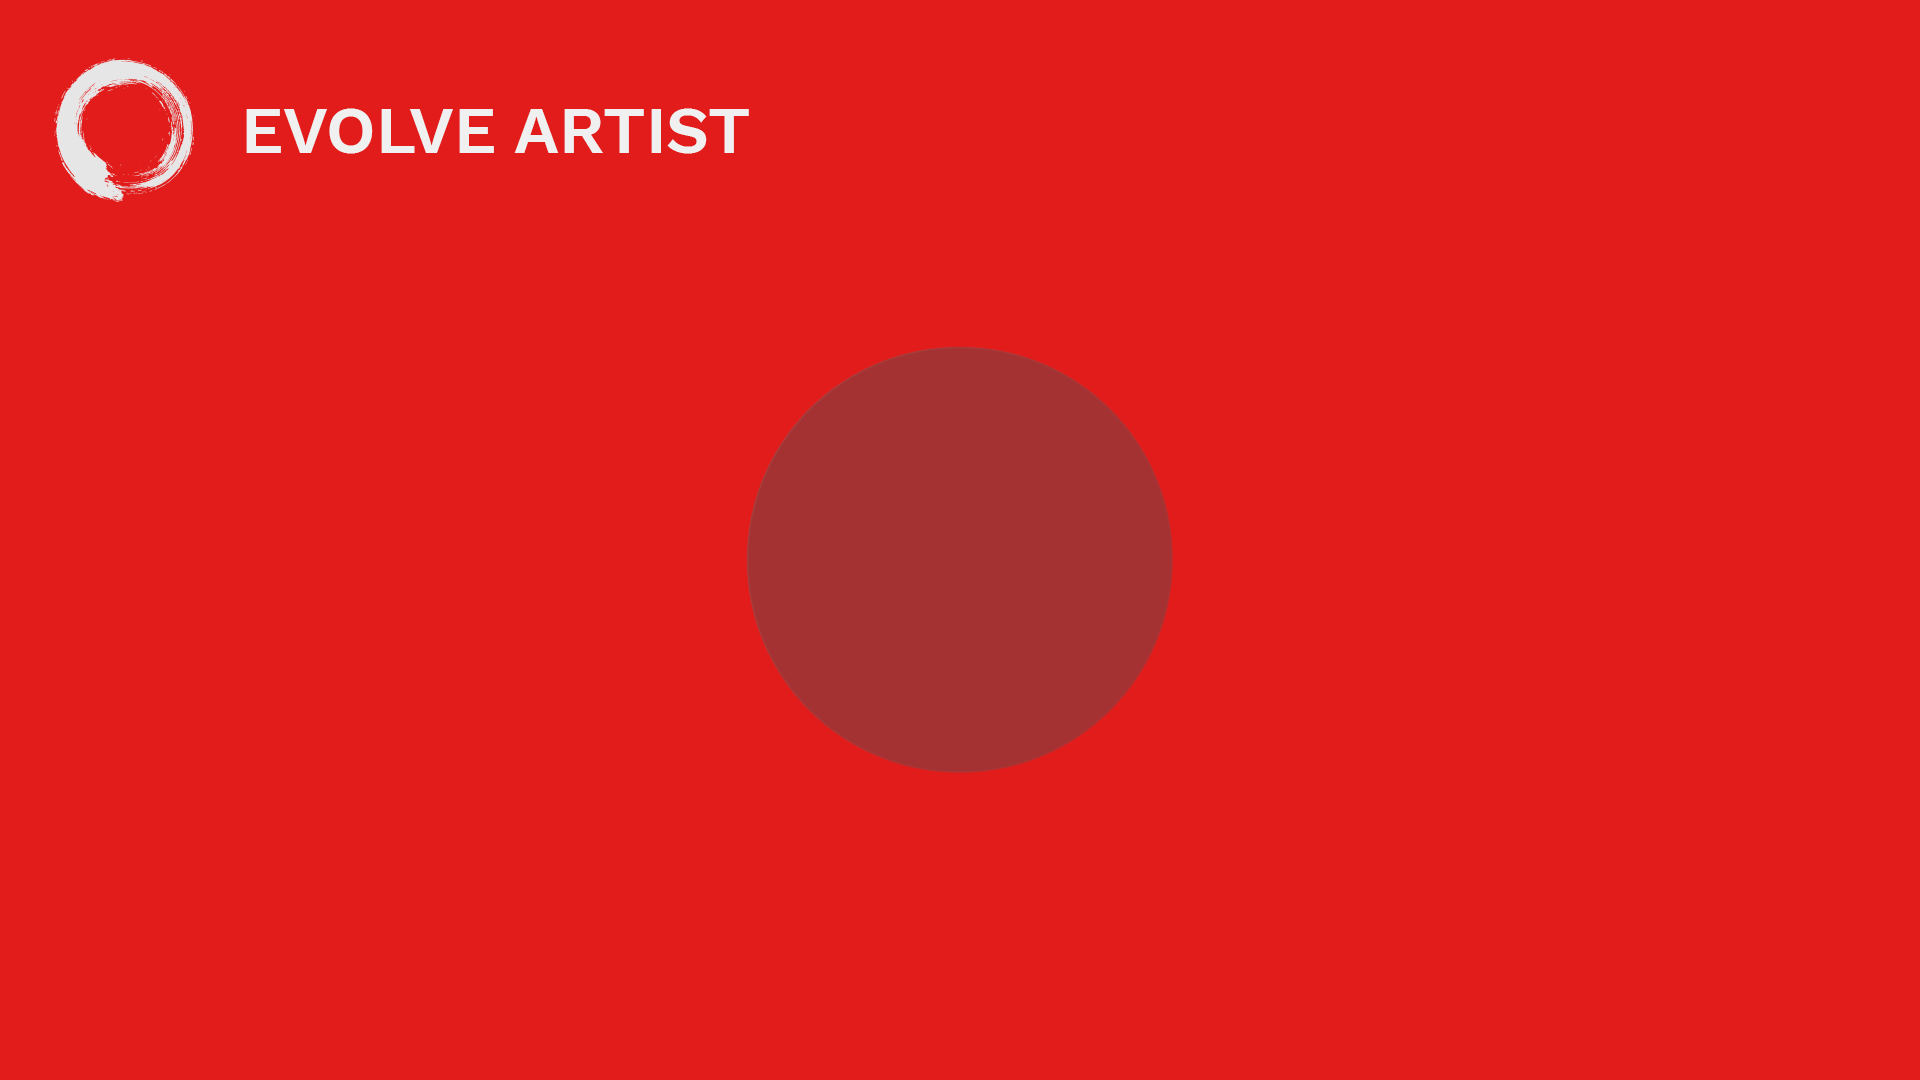 A red circle looks more blue next to a red background